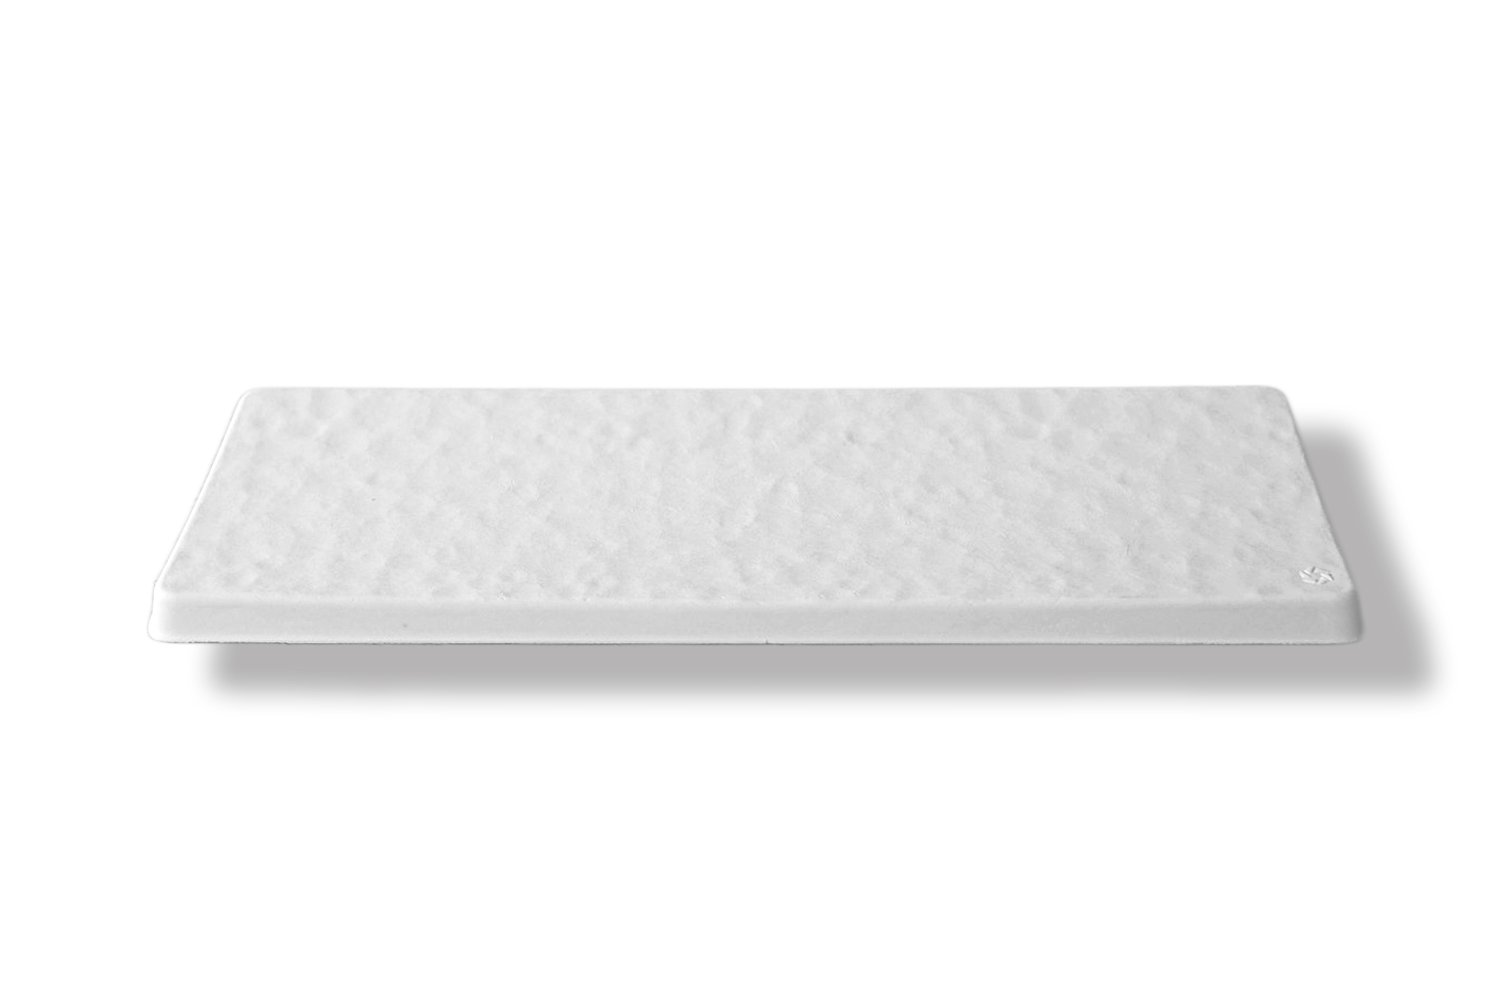 Wasara 100% Compostable 12x4 Inch Rectangular Serving Tray, 200 Count Case